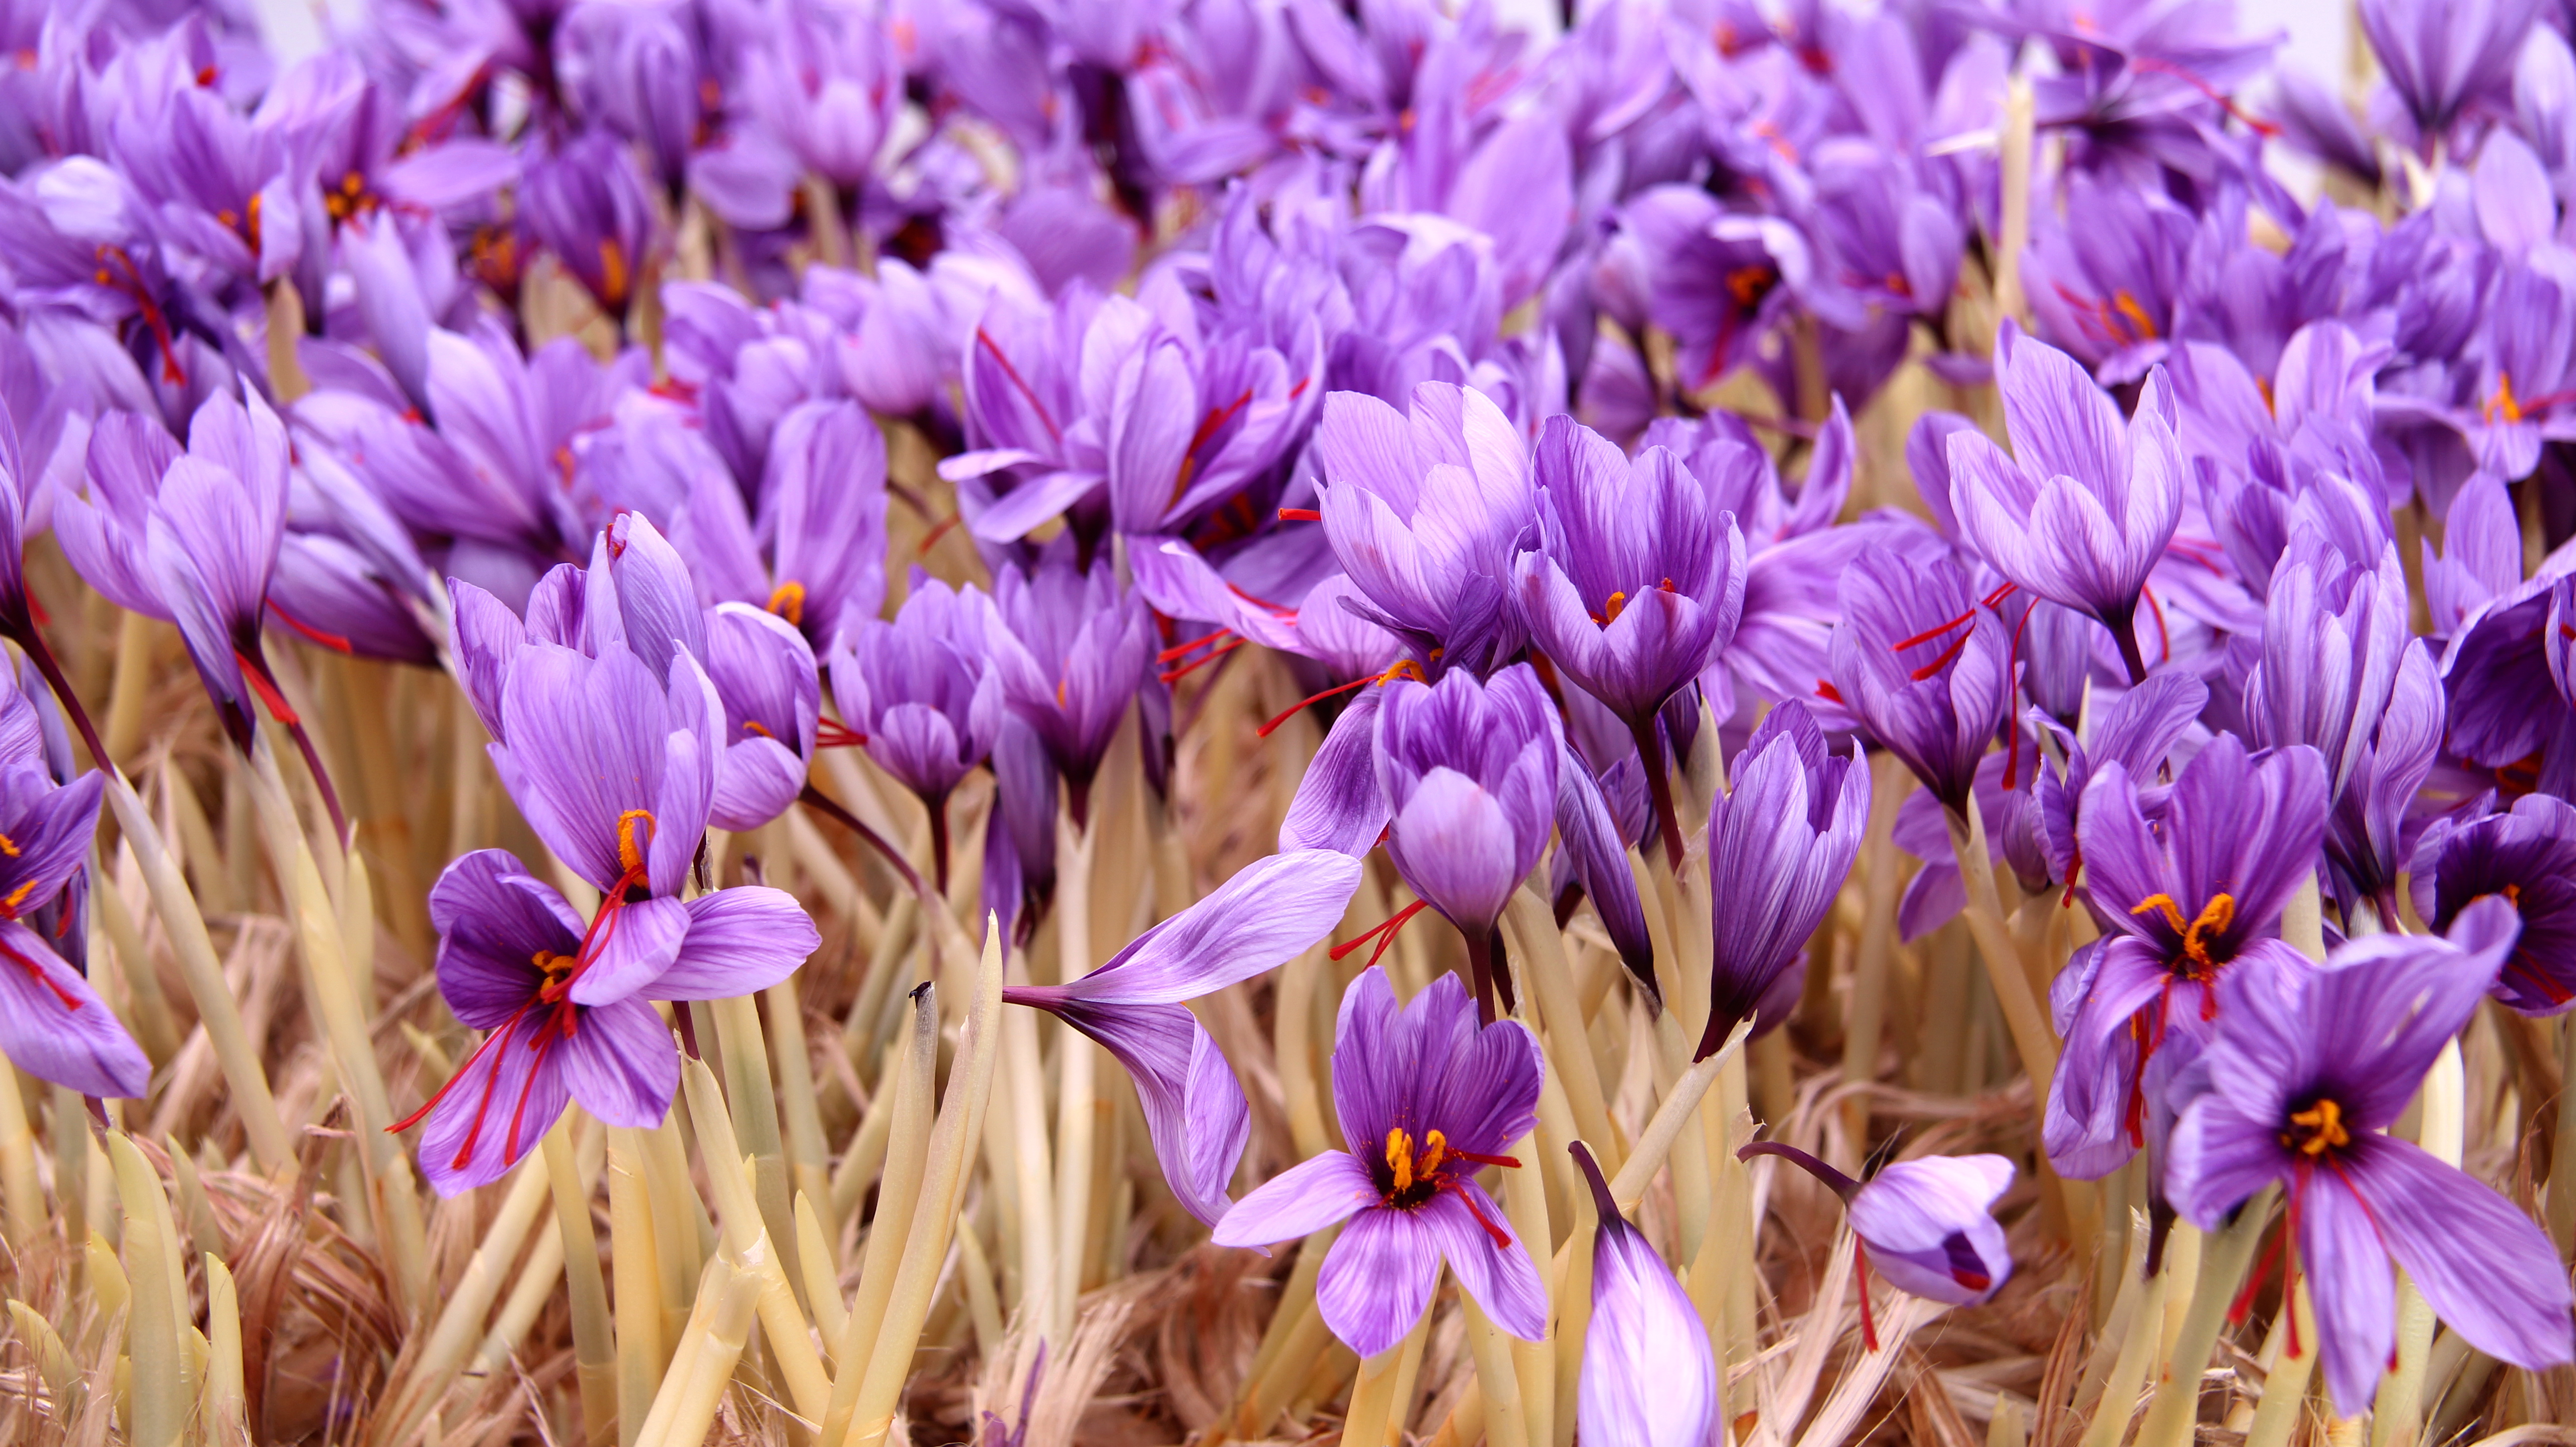 Herat authorities work to implement ban on Iranian saffron imports